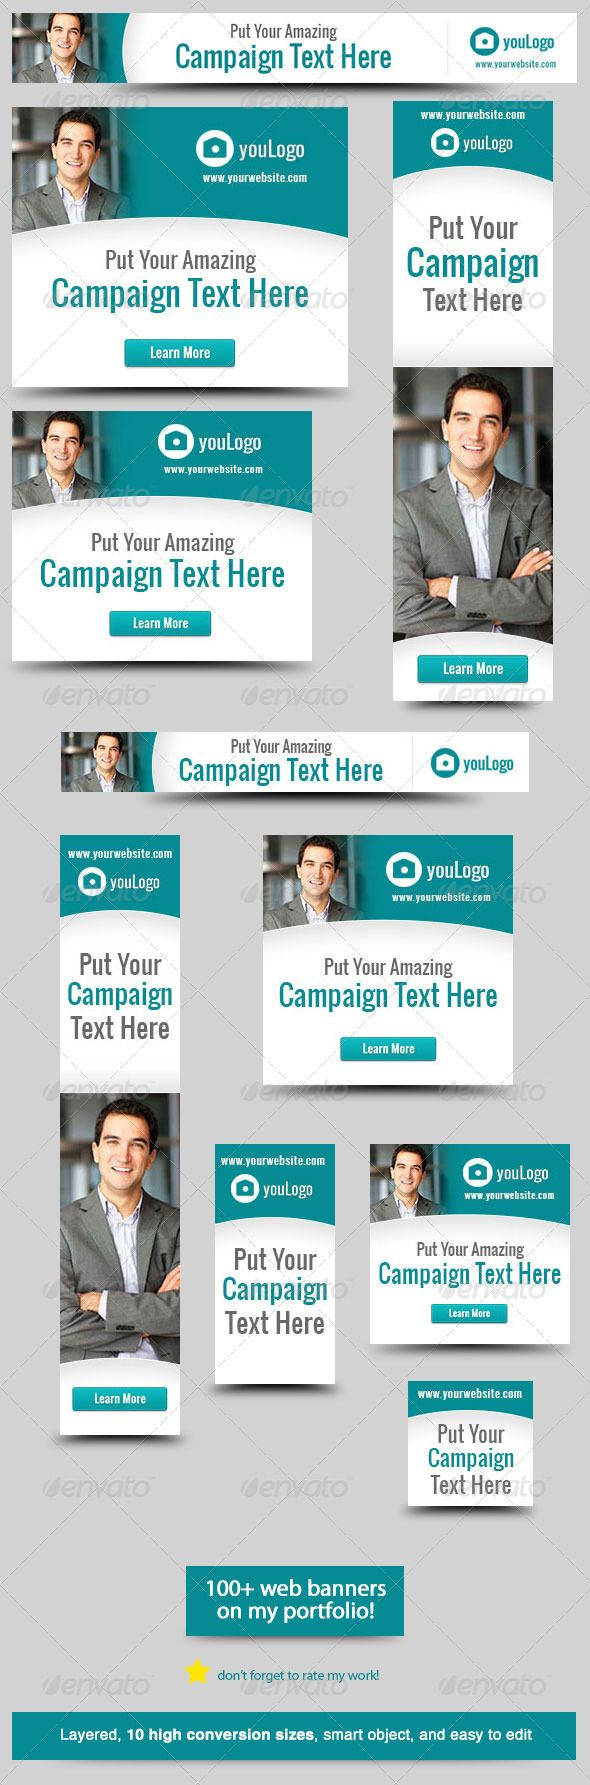 Corporate Web Banner Design Template 28  #GraphicRiver        Green Campaign – Banner Design Template Cool and clean corporate business web banner Web Banner sizes These are the banner sizes that will give you high rate of conversion    leaderboard (728×90)   banner (468×60)   button (125×125)   small square (200×200)   wide skyscraper (160×600)   skyscraper (120×600)   vertical banner (120×240)   large rectangle (336×280)  Ad Sizes for Mobile Ads   square (250×250)